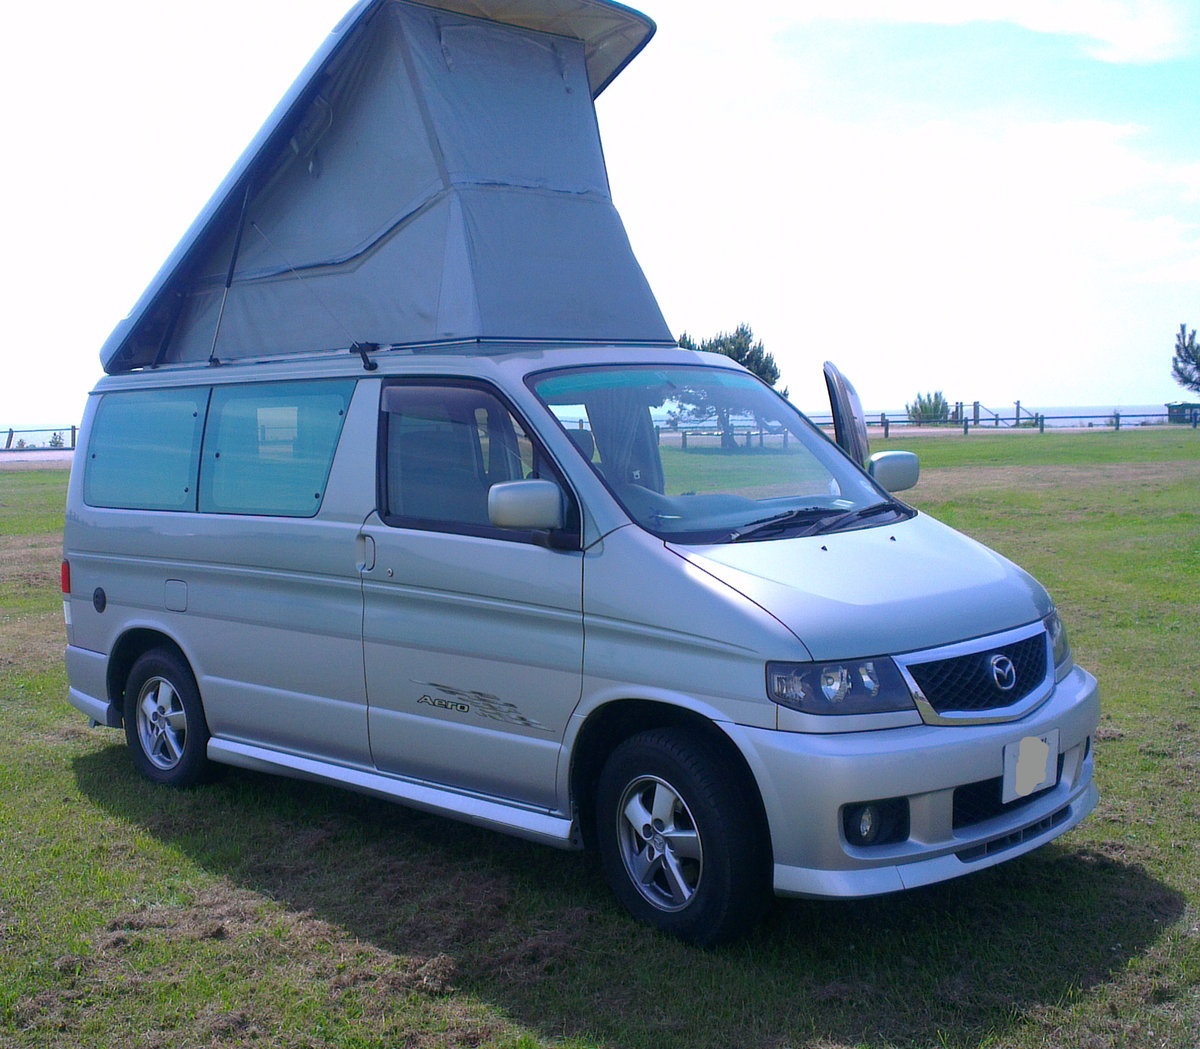 2001 Mazda Bongo Aero 2.5L V6 Petrol + LPG For Sale (picture 1 of 6)